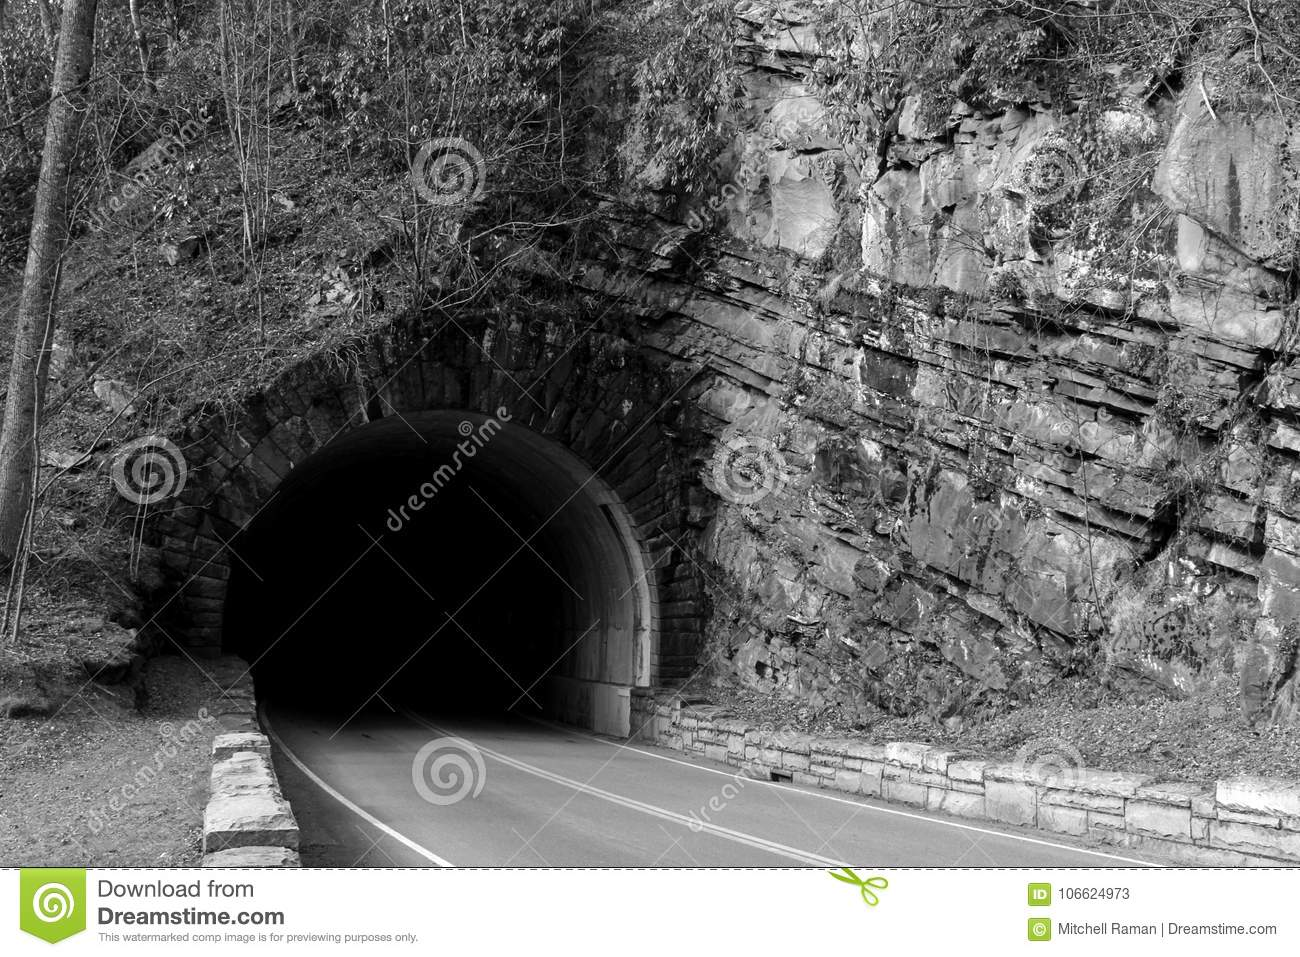 Black and white street photography of a tunnel going through the great smoky mountains national park